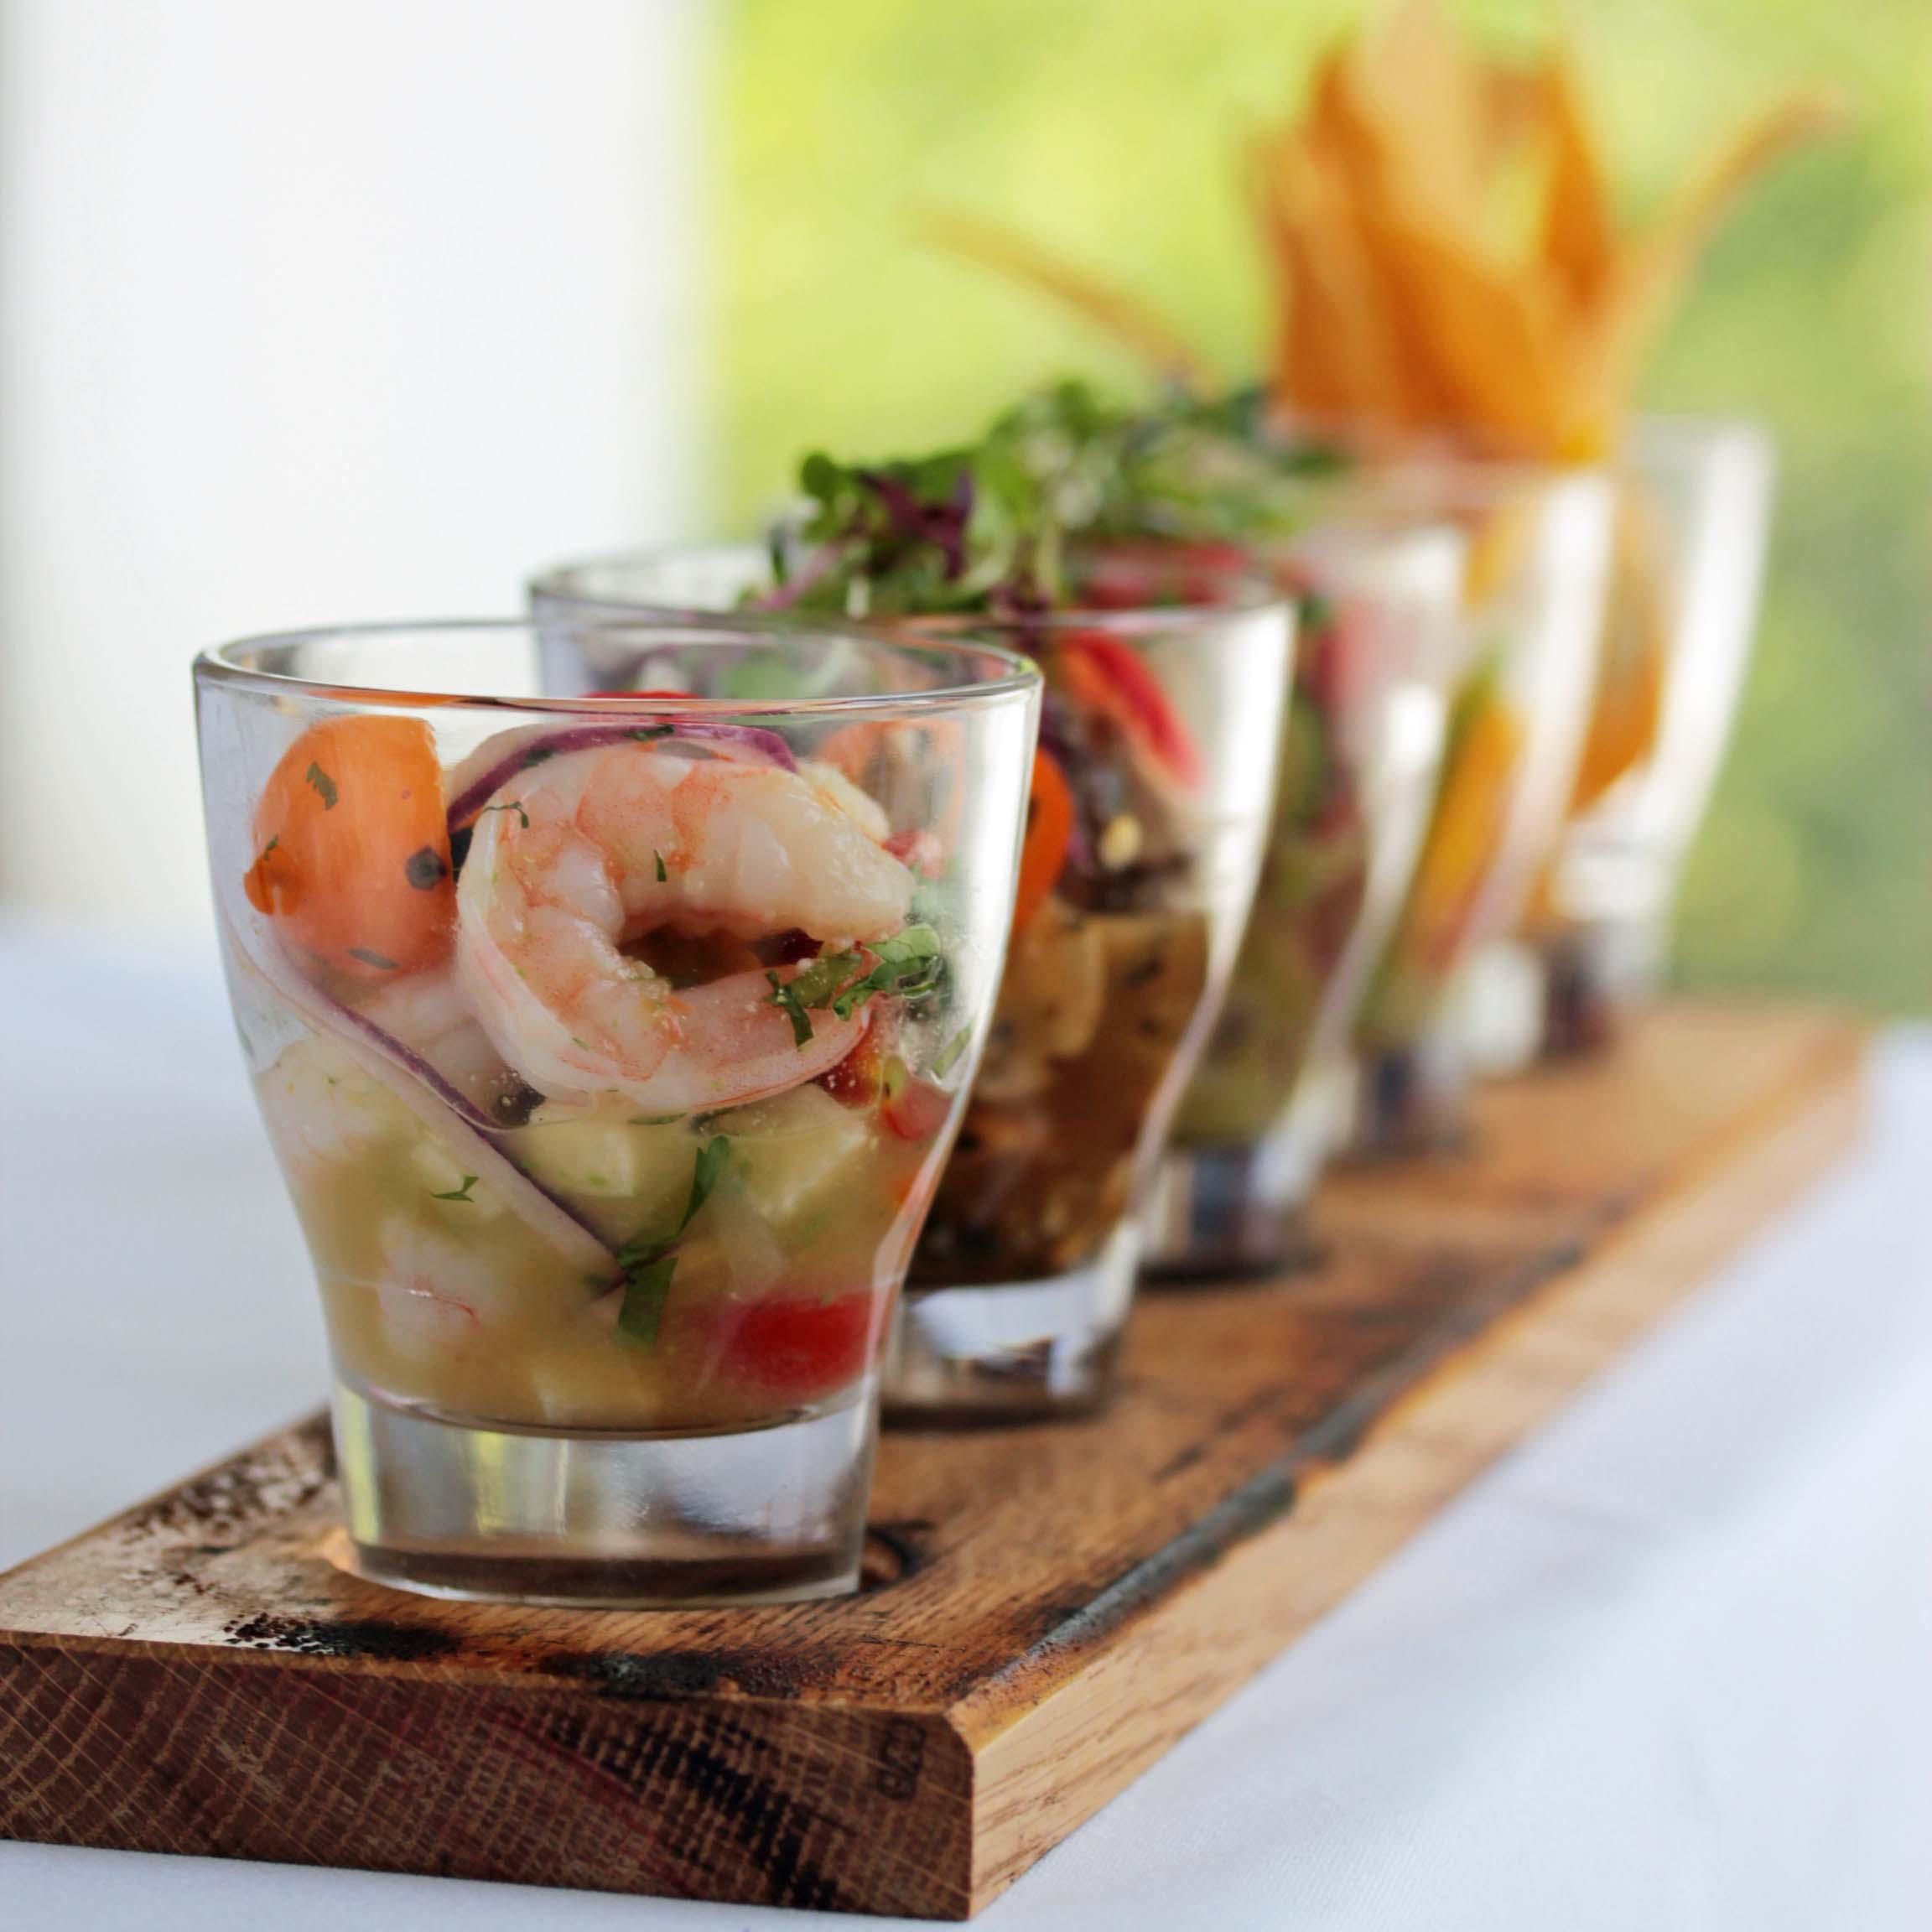 A new ceviche sampler from Rosa Mexicano